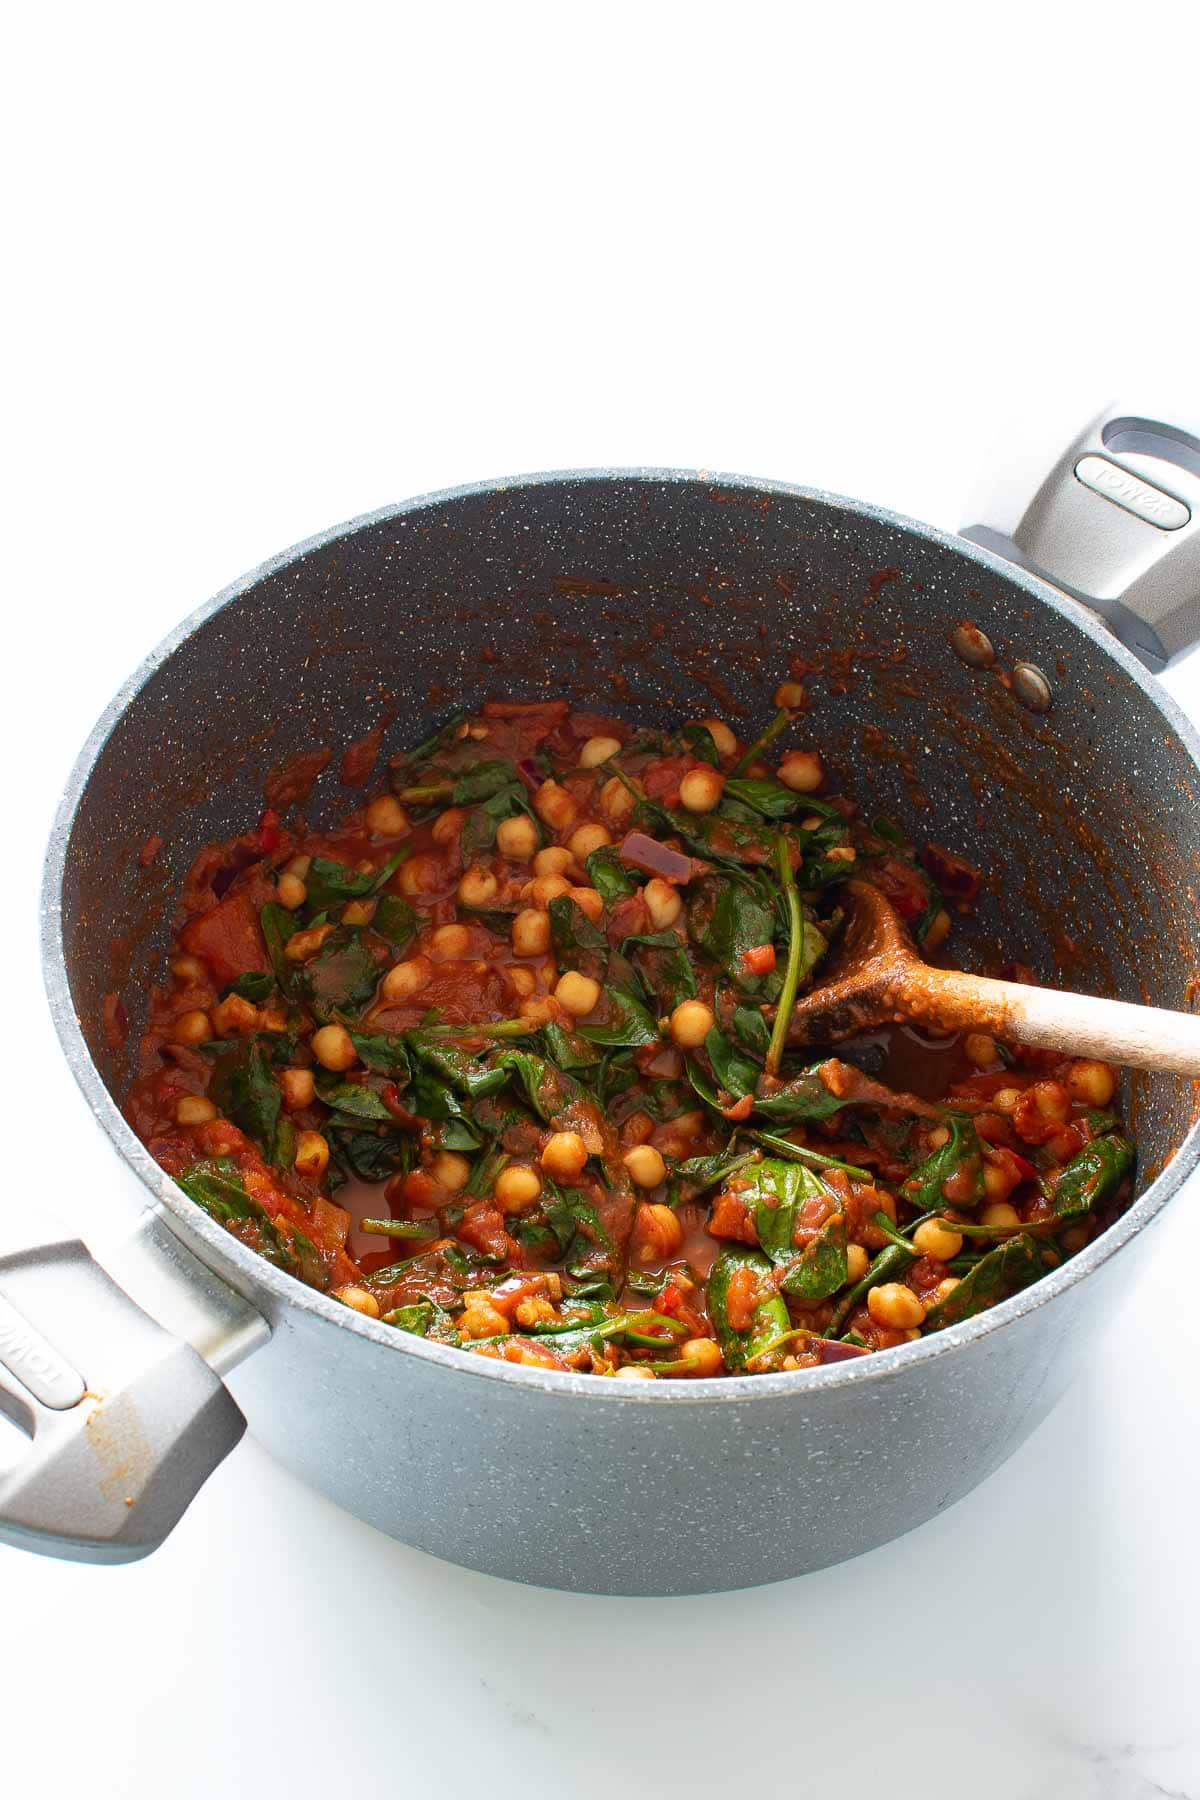 A pot of chickpea and spinach curry with tomatoes.